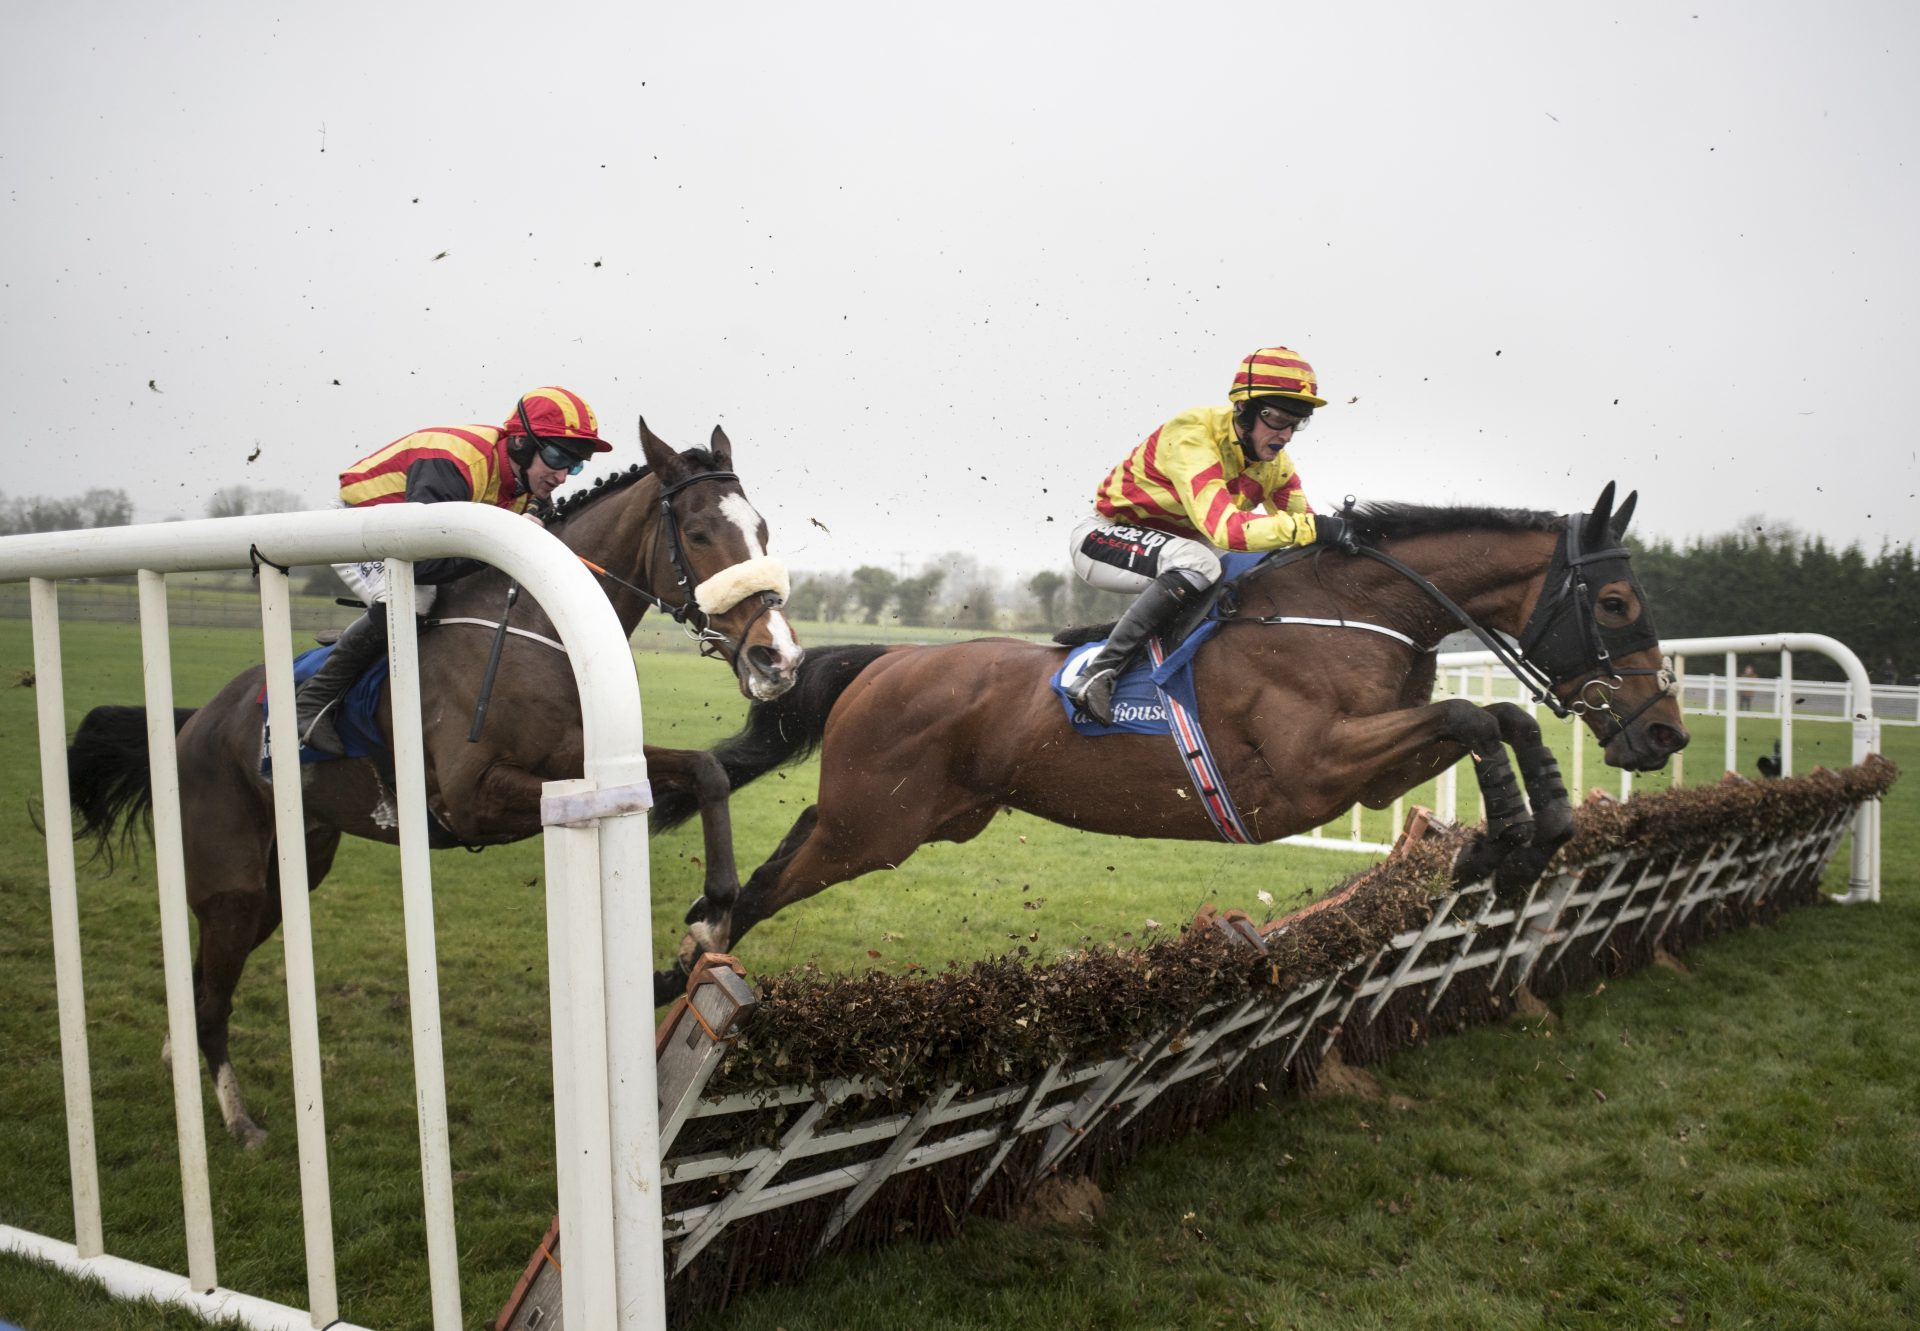 Jack Dillinger (Westerner) Wins Impressively At Fairyhouse